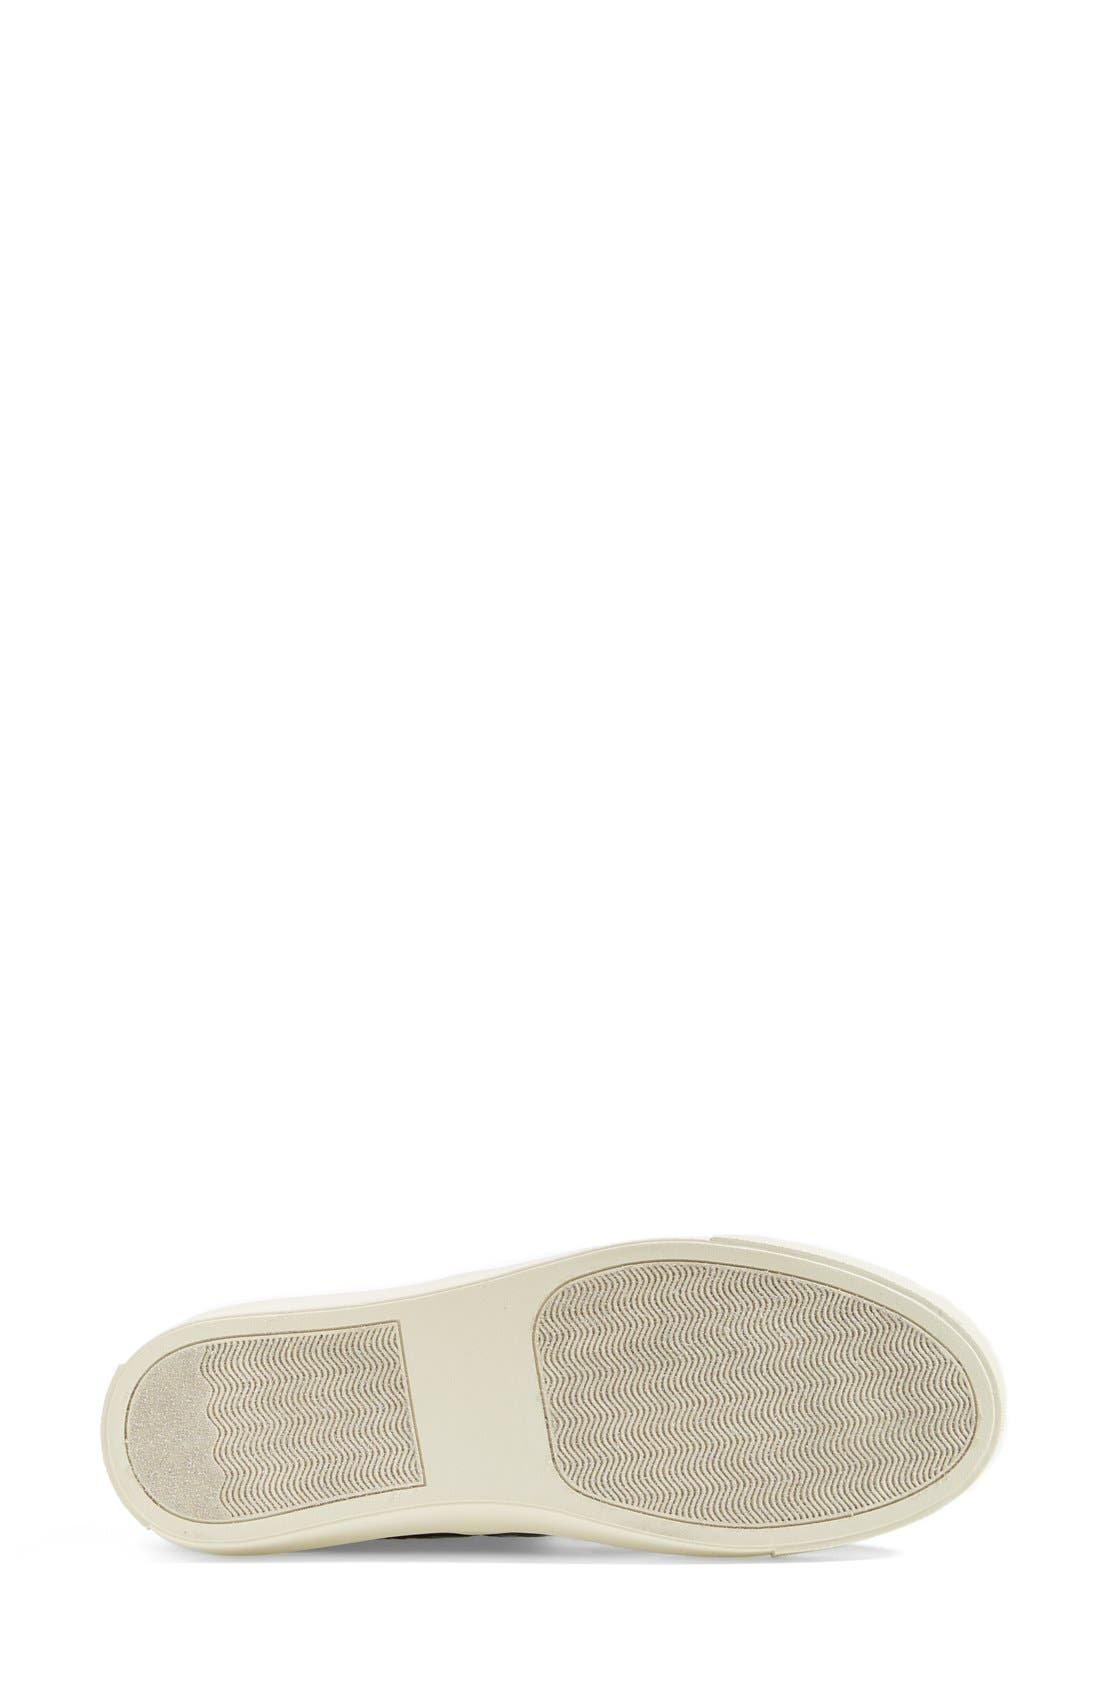 'Ecntrc-c' Snake-Embossed Slip-On Sneaker,                             Alternate thumbnail 5, color,